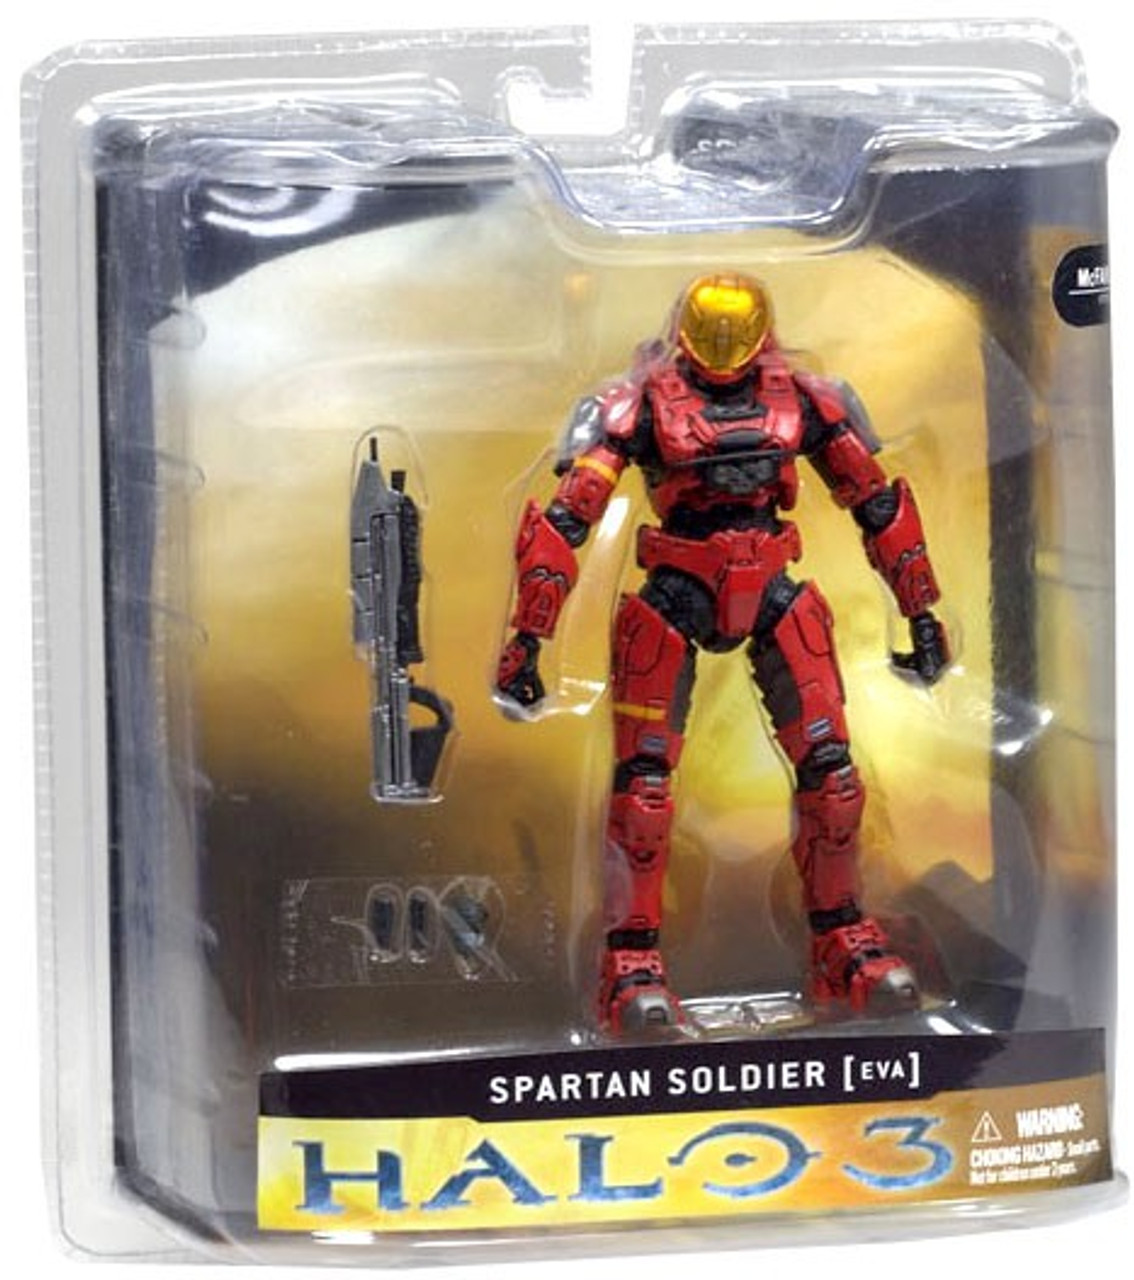 McFarlane Toys Halo 3 Series 1 Spartan Soldier EVA Action Figure [Red]